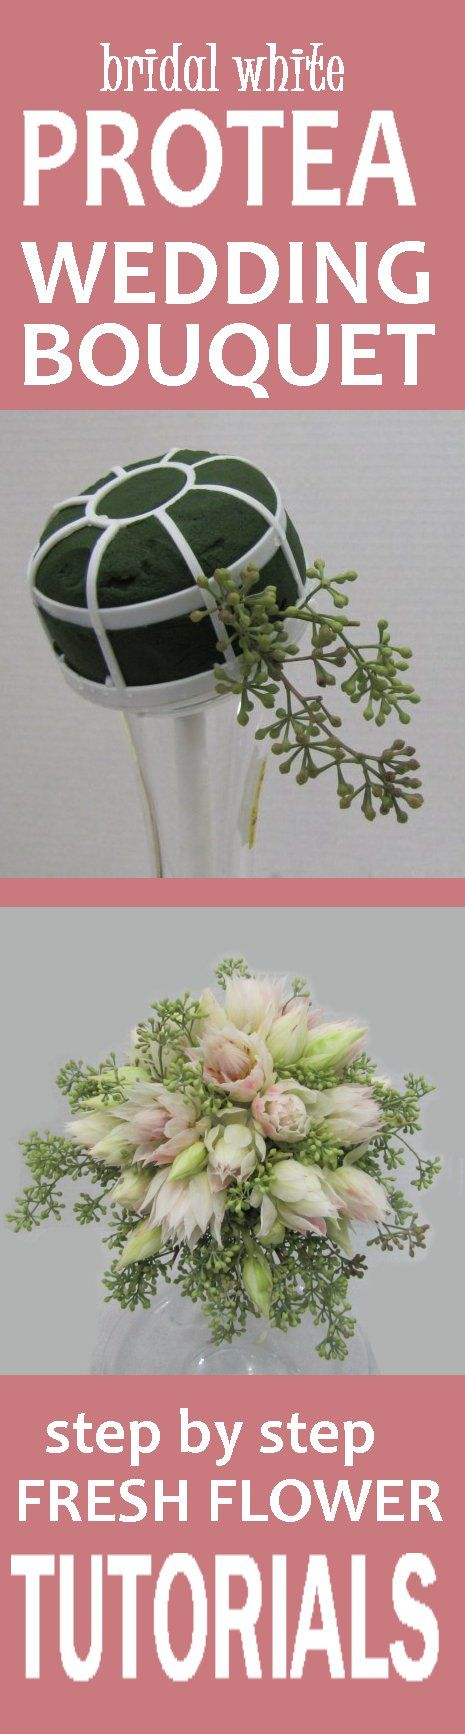 129 best how to make a wedding bouquet images on pinterest bridal wedding bridal bouquets easy free fresh flower tutorials learn how to make bridal bouquets izmirmasajfo Choice Image